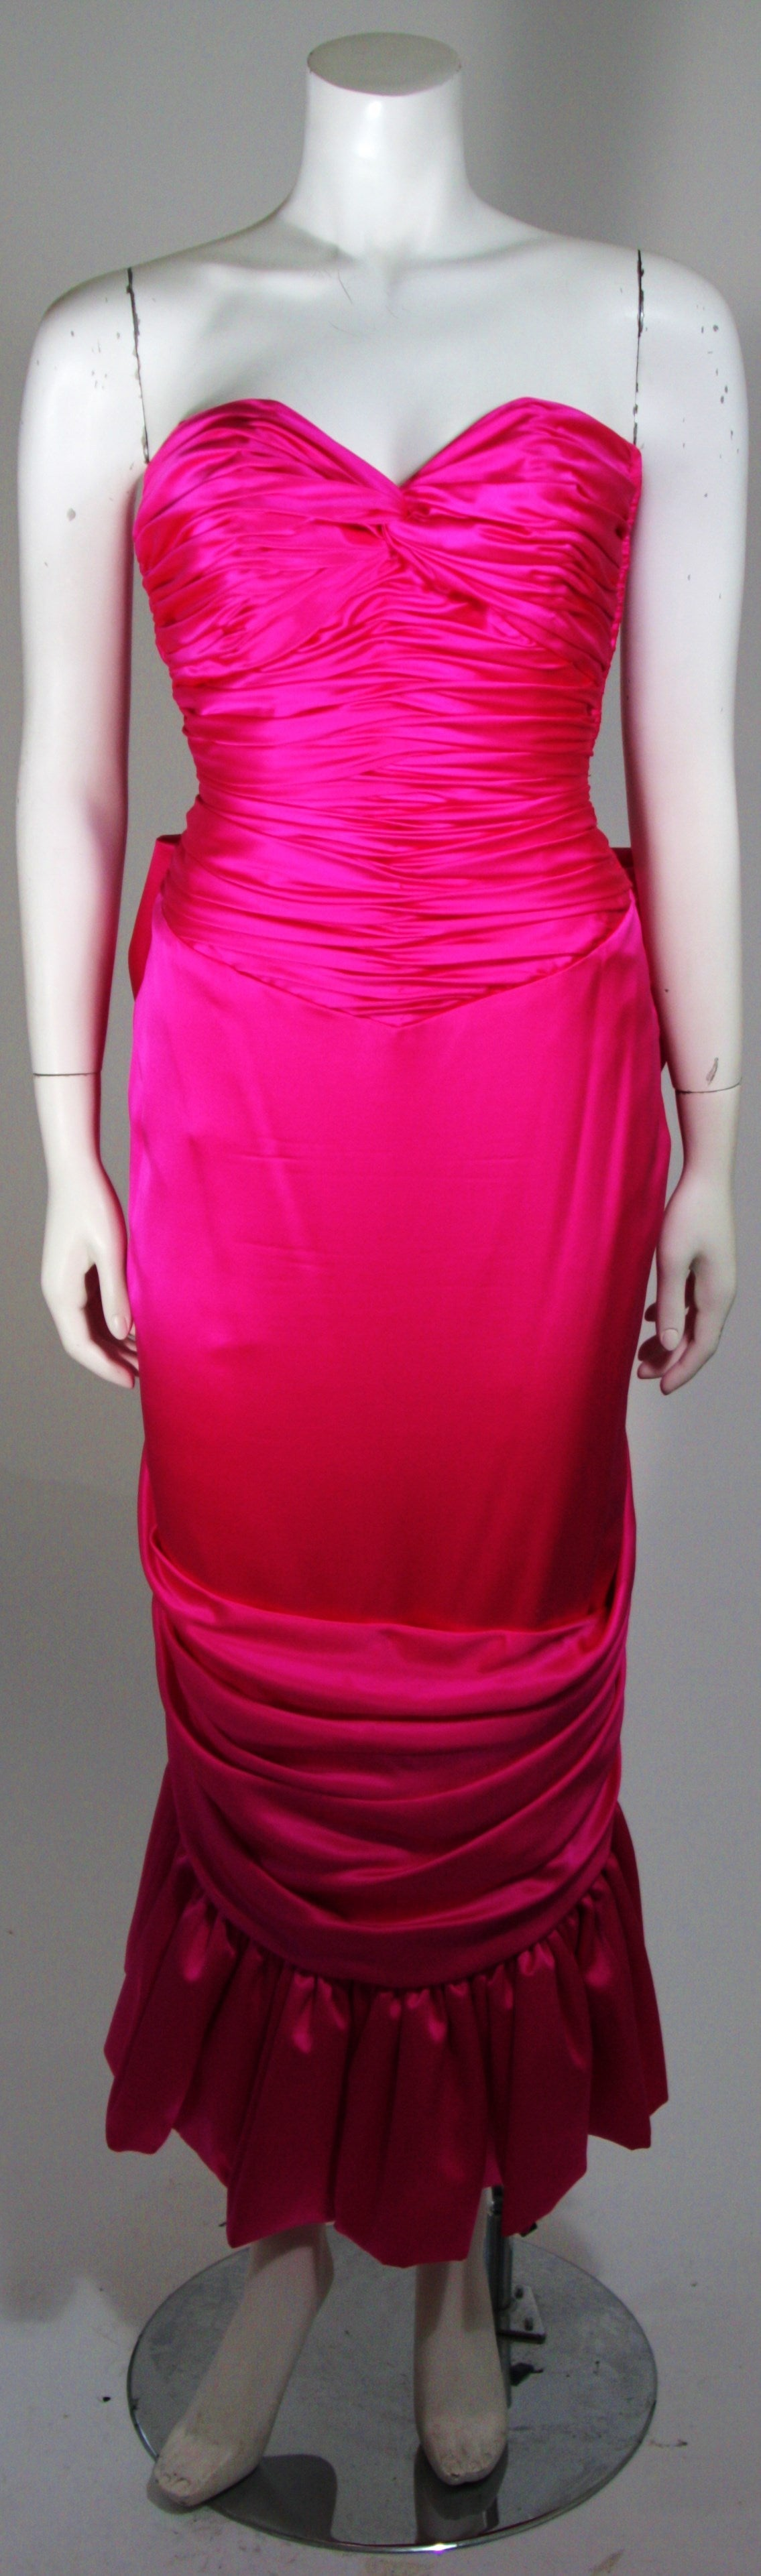 Vicky Tiel Magenta Gown with Large Bow Size Small 2